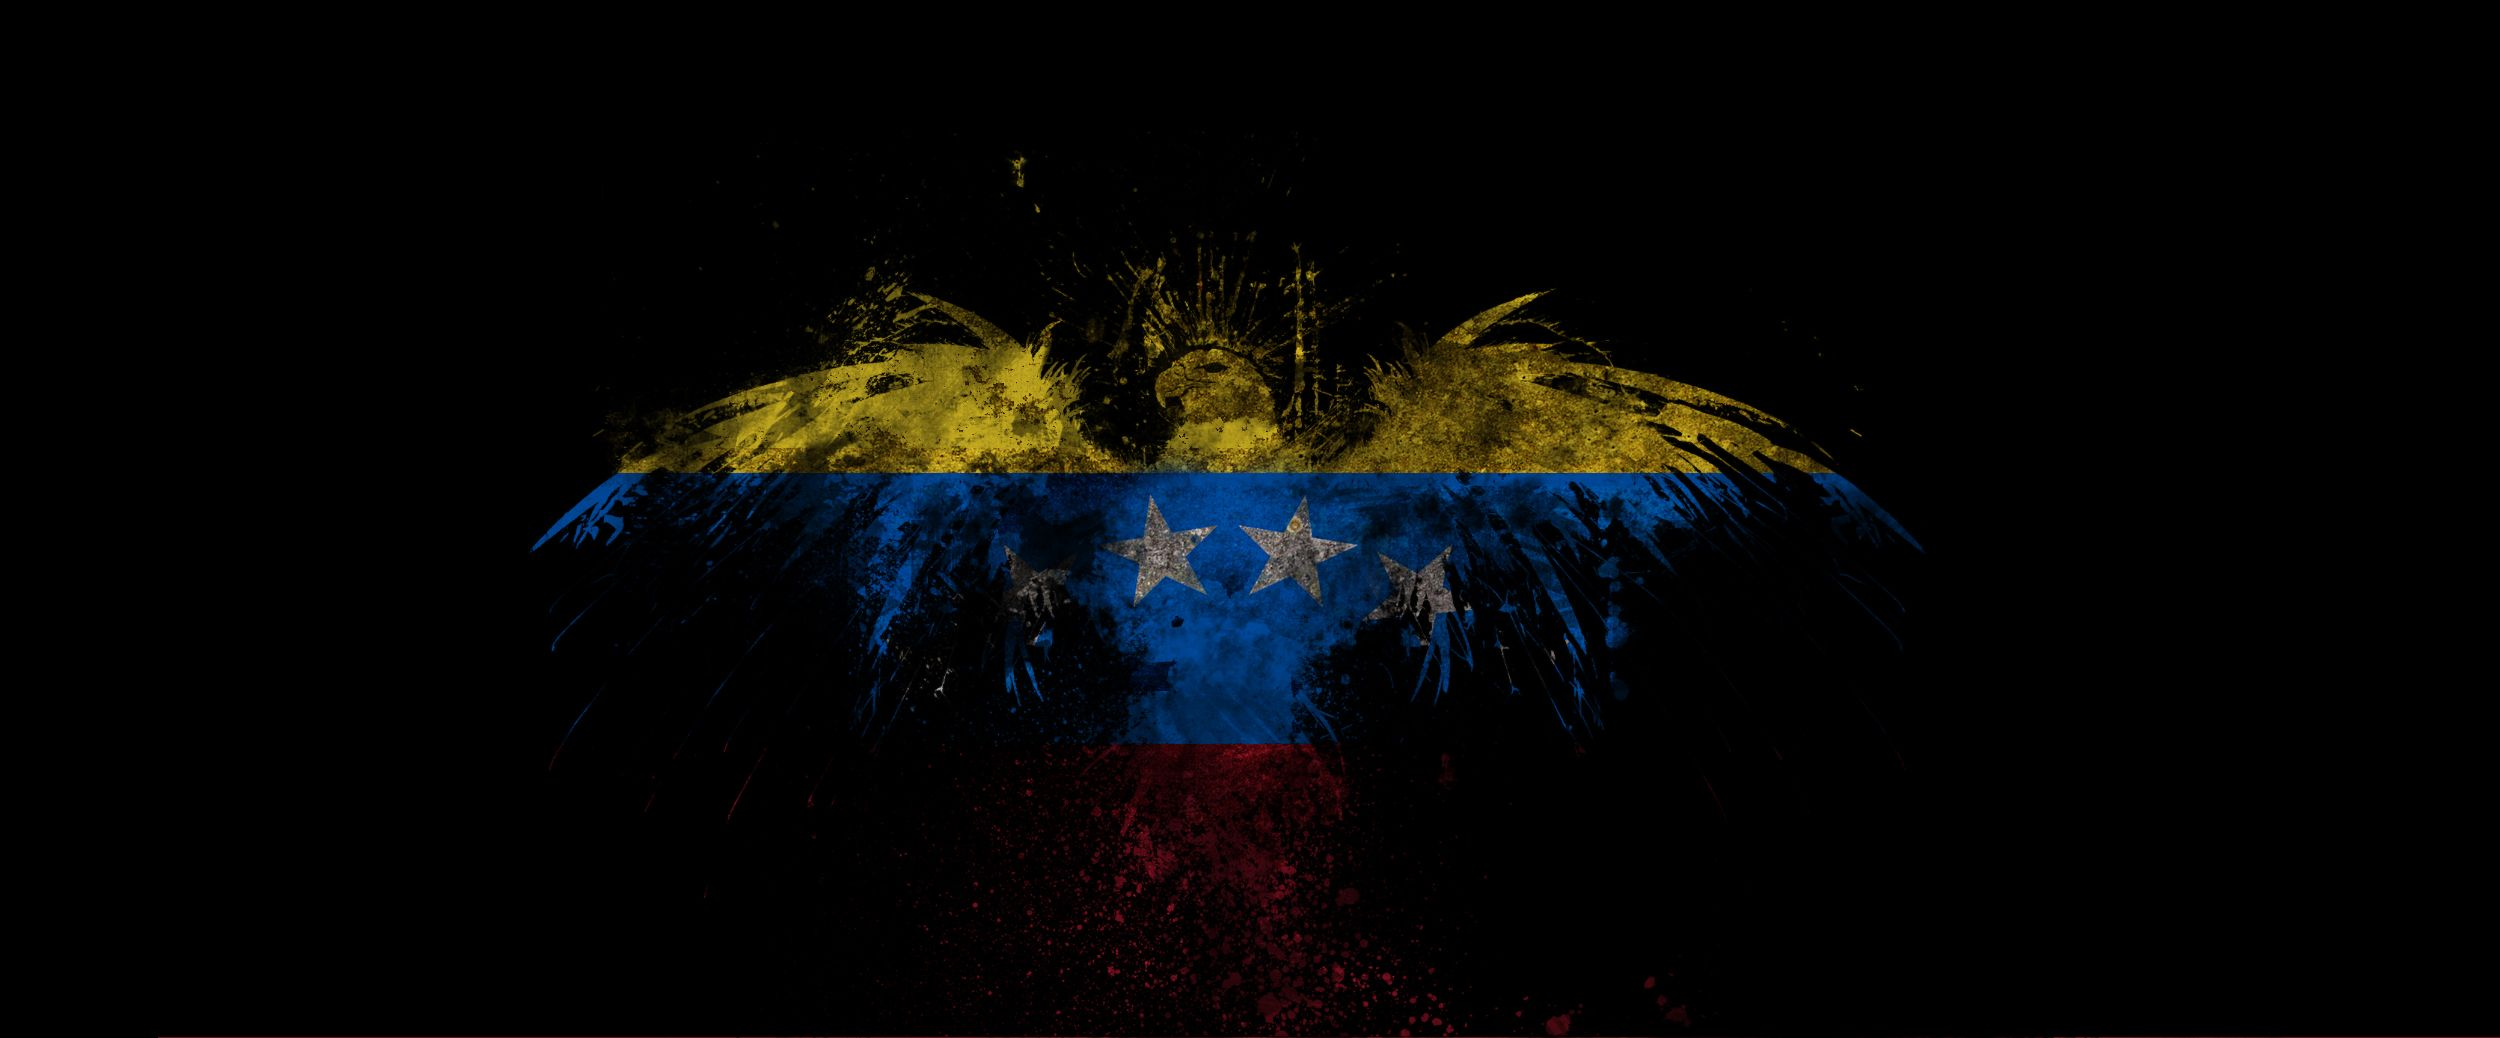 2500x1038 77+] Venezuela Wallpaper on WallpaperSafari